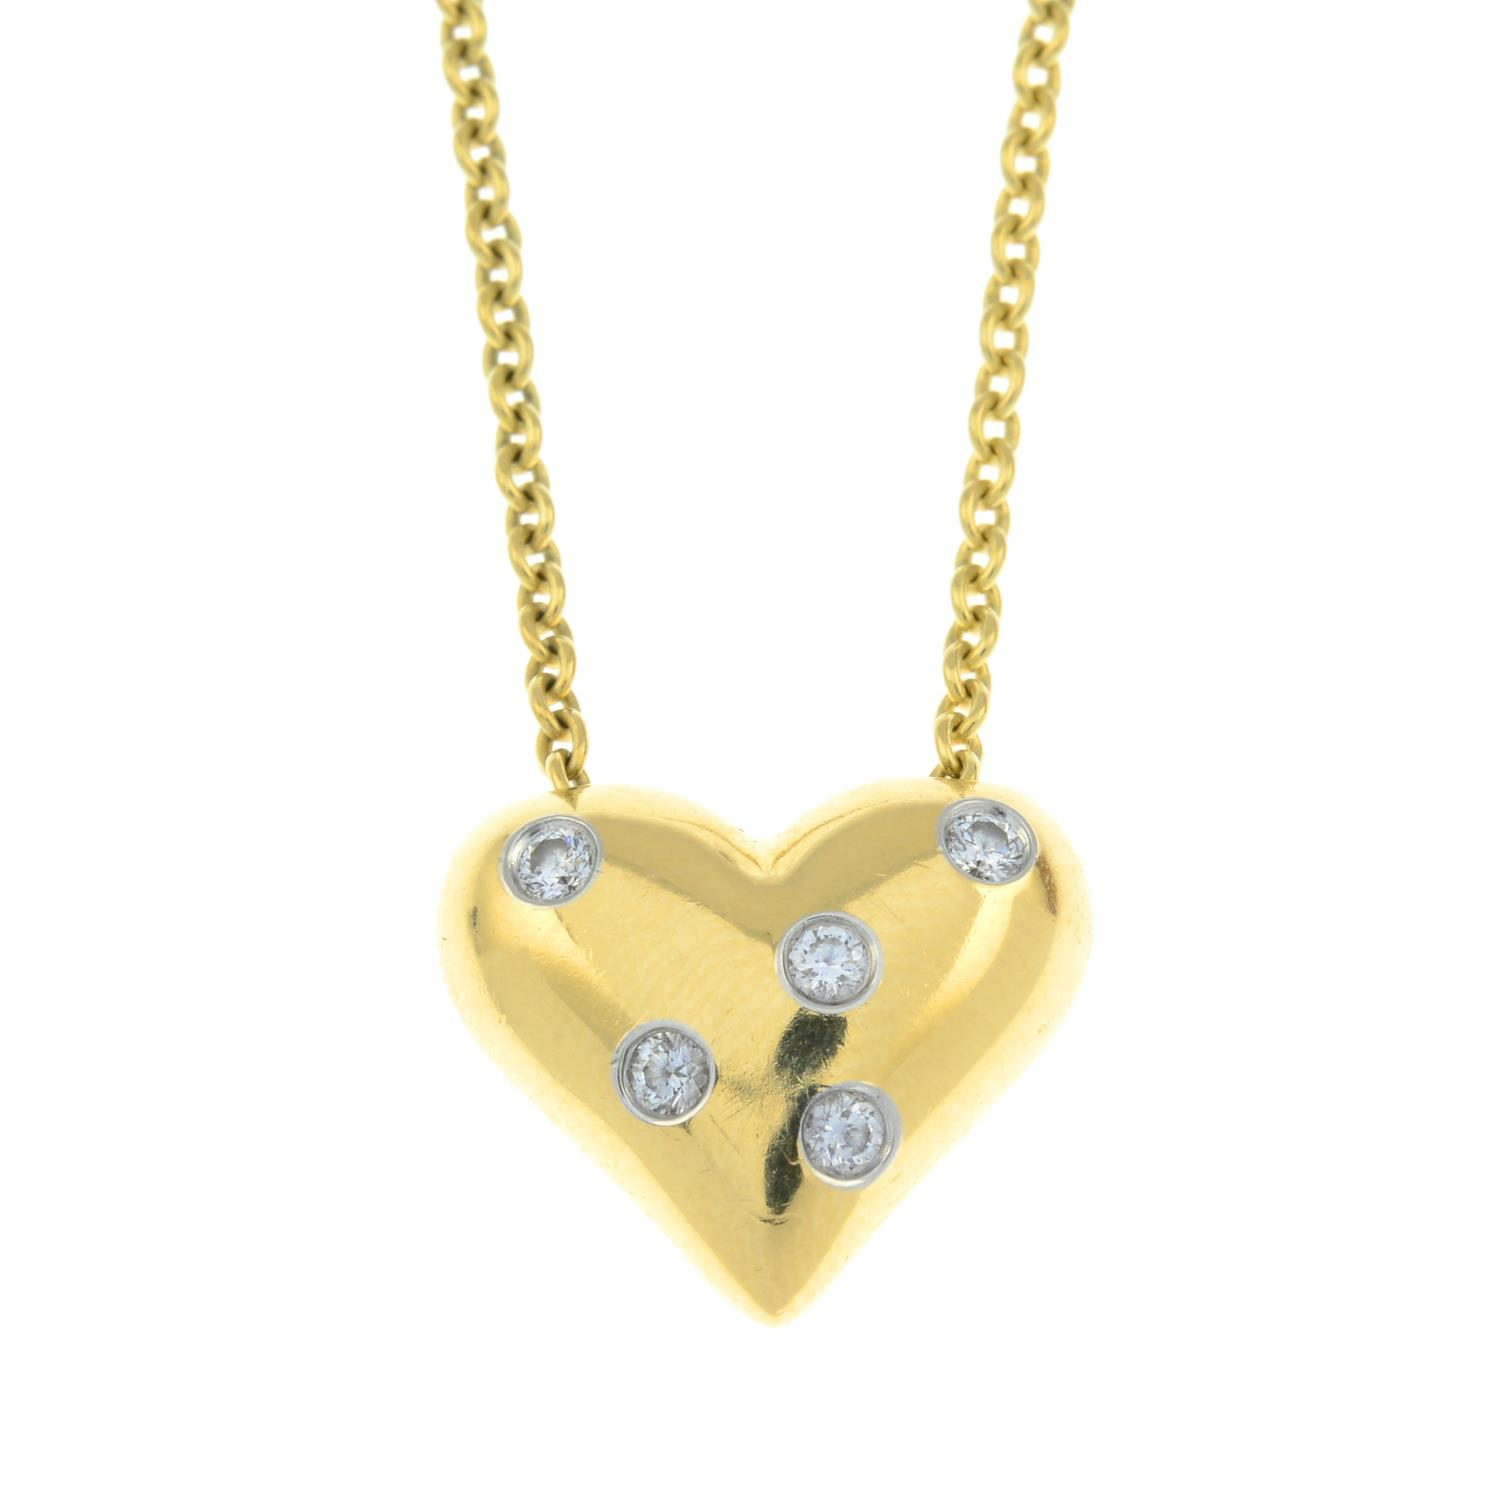 A diamond 'Etoile' heart pendant, on chain, by Tiffany & Co. - Image 2 of 6